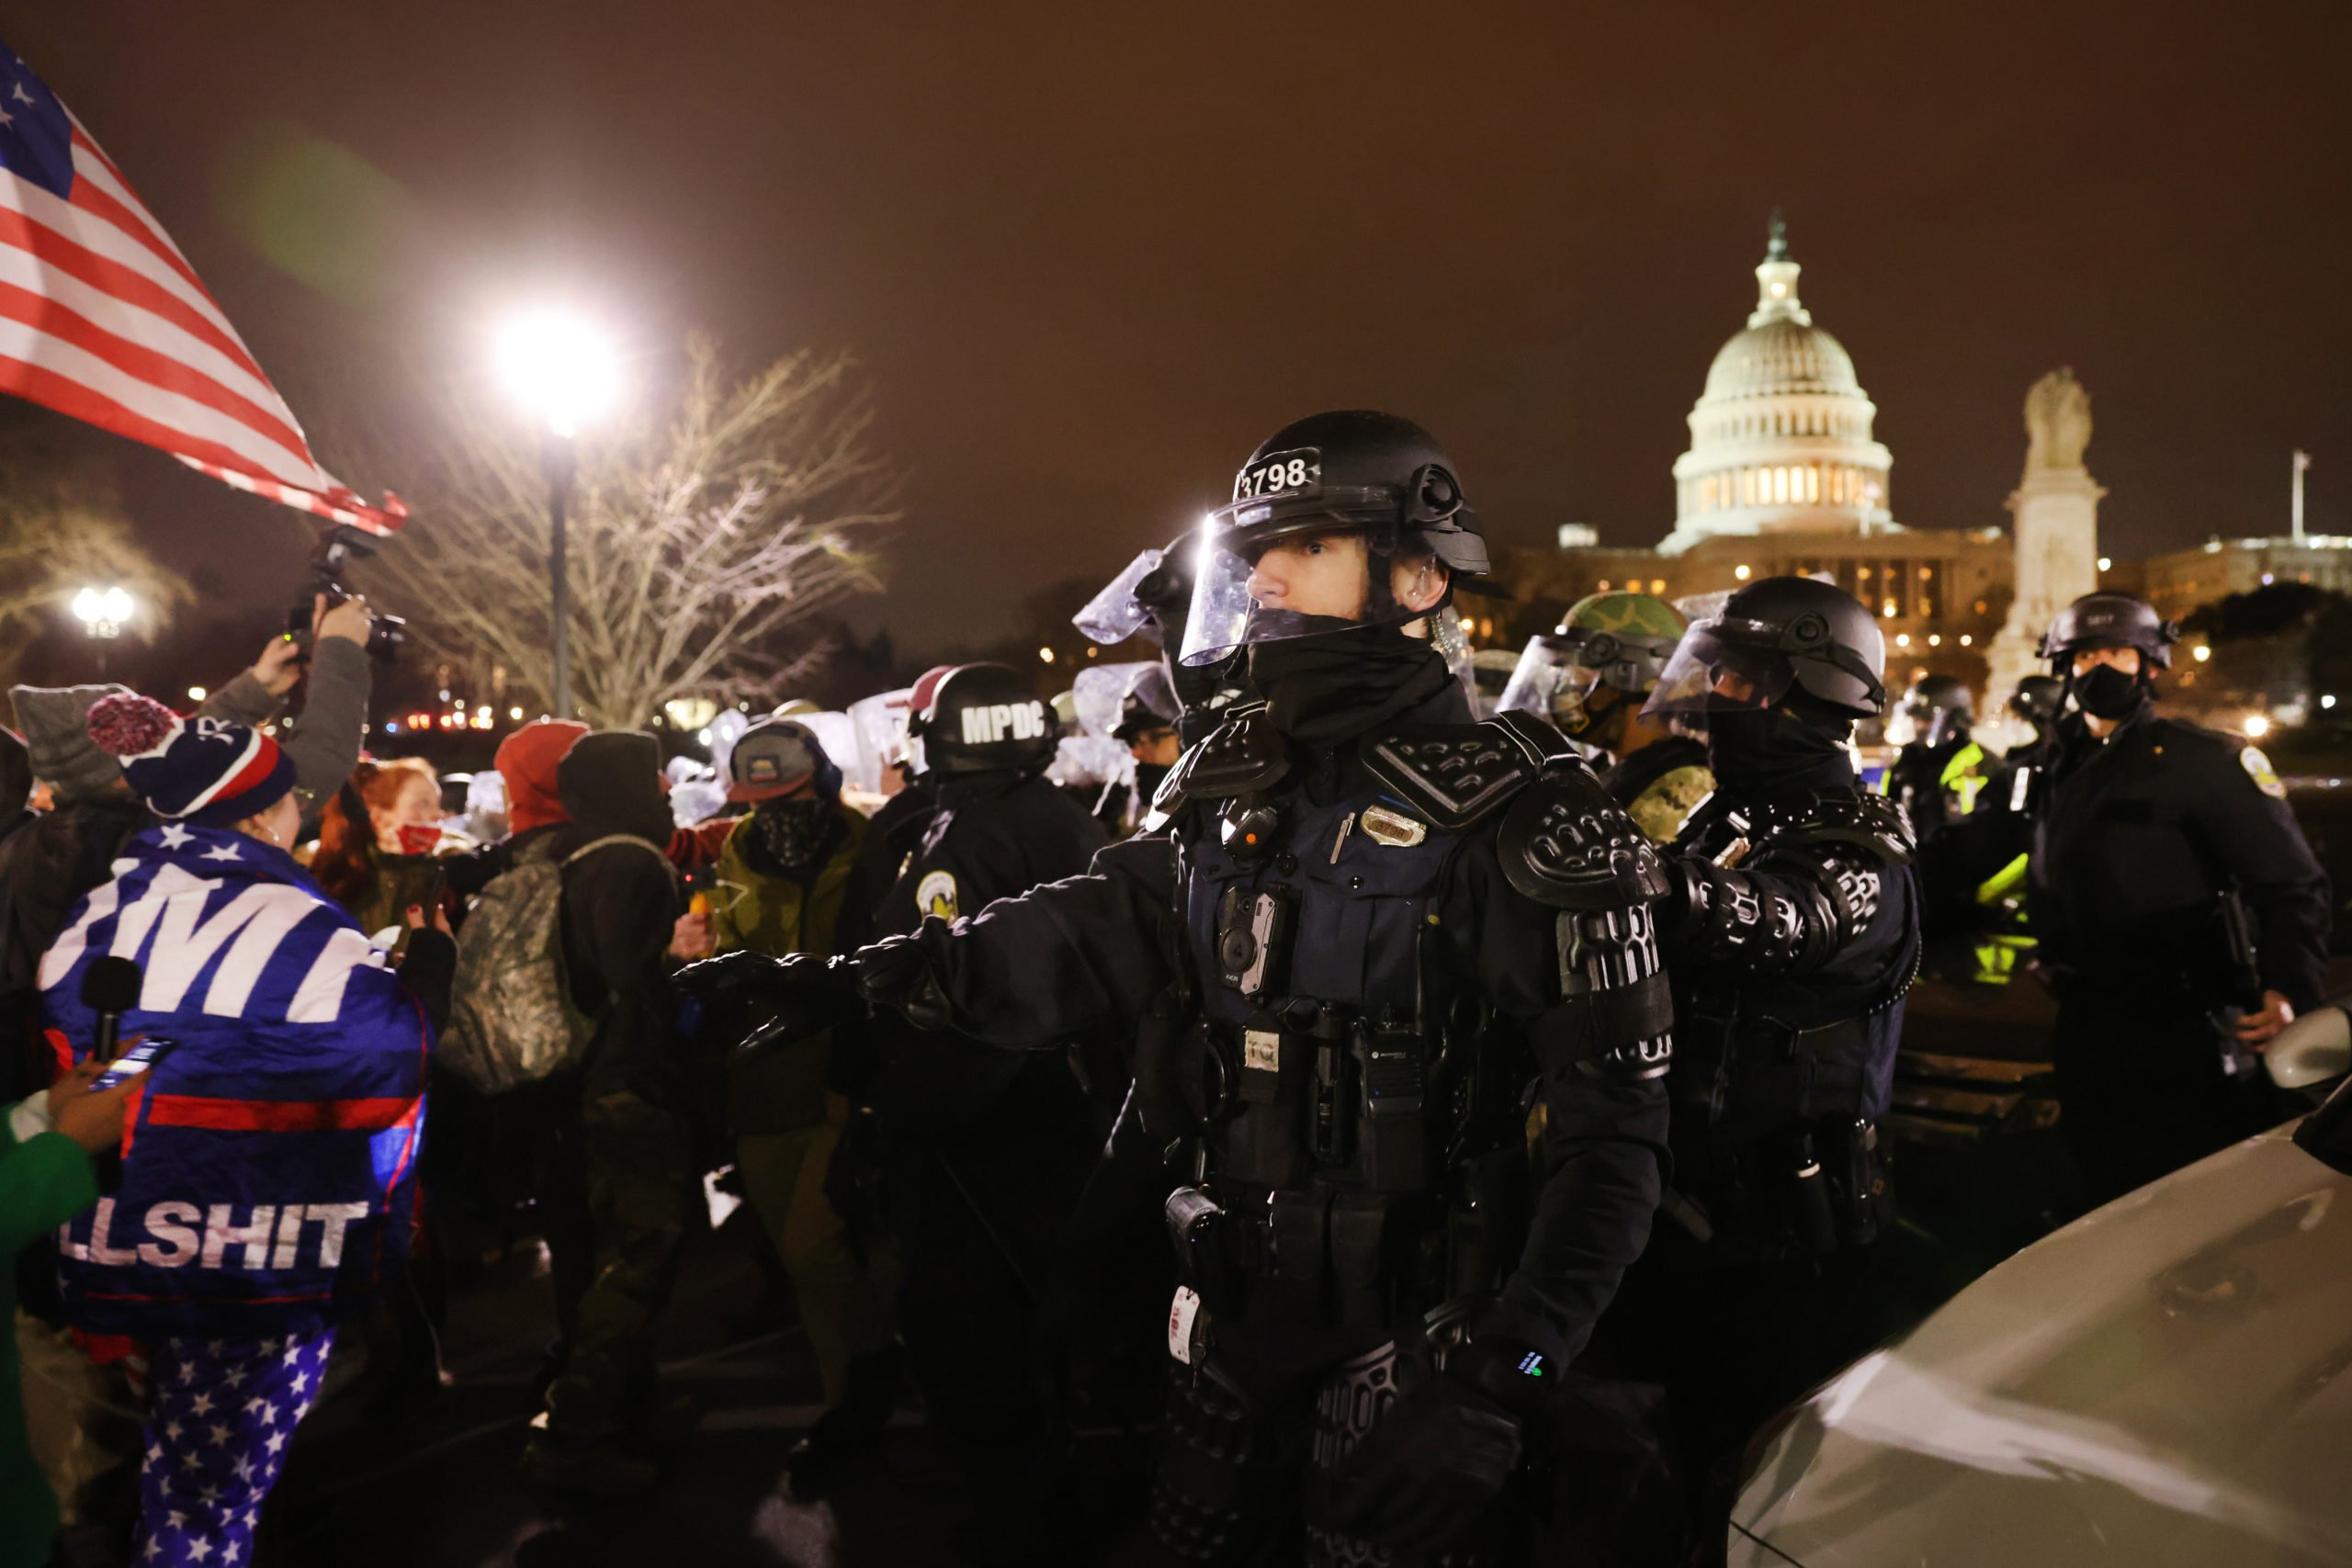 WASHINGTON, DC - JANUARY 06: Members of the National Guard and the Washington D.C. police keep a small group of demonstrators away from the Capital after thousands of Donald Trump supporters stormed the United States Capitol building following a